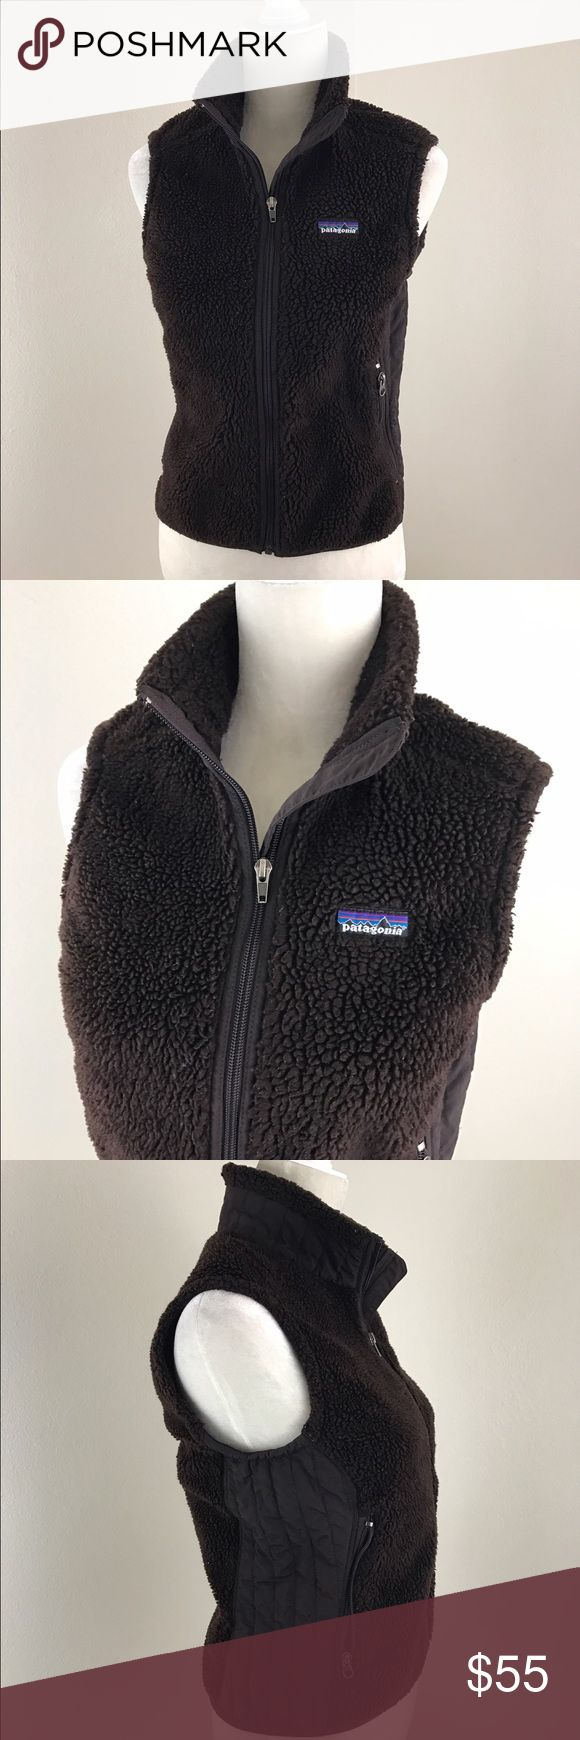 Fuzzy Patagonia Fleece Vest Brown Fuzzy Patagonia dark brown zip up vest with pockets. Ribbed detail on the sides and turtle neck height collar. Used but in good condition. Patagonia Jackets & Coats Vests